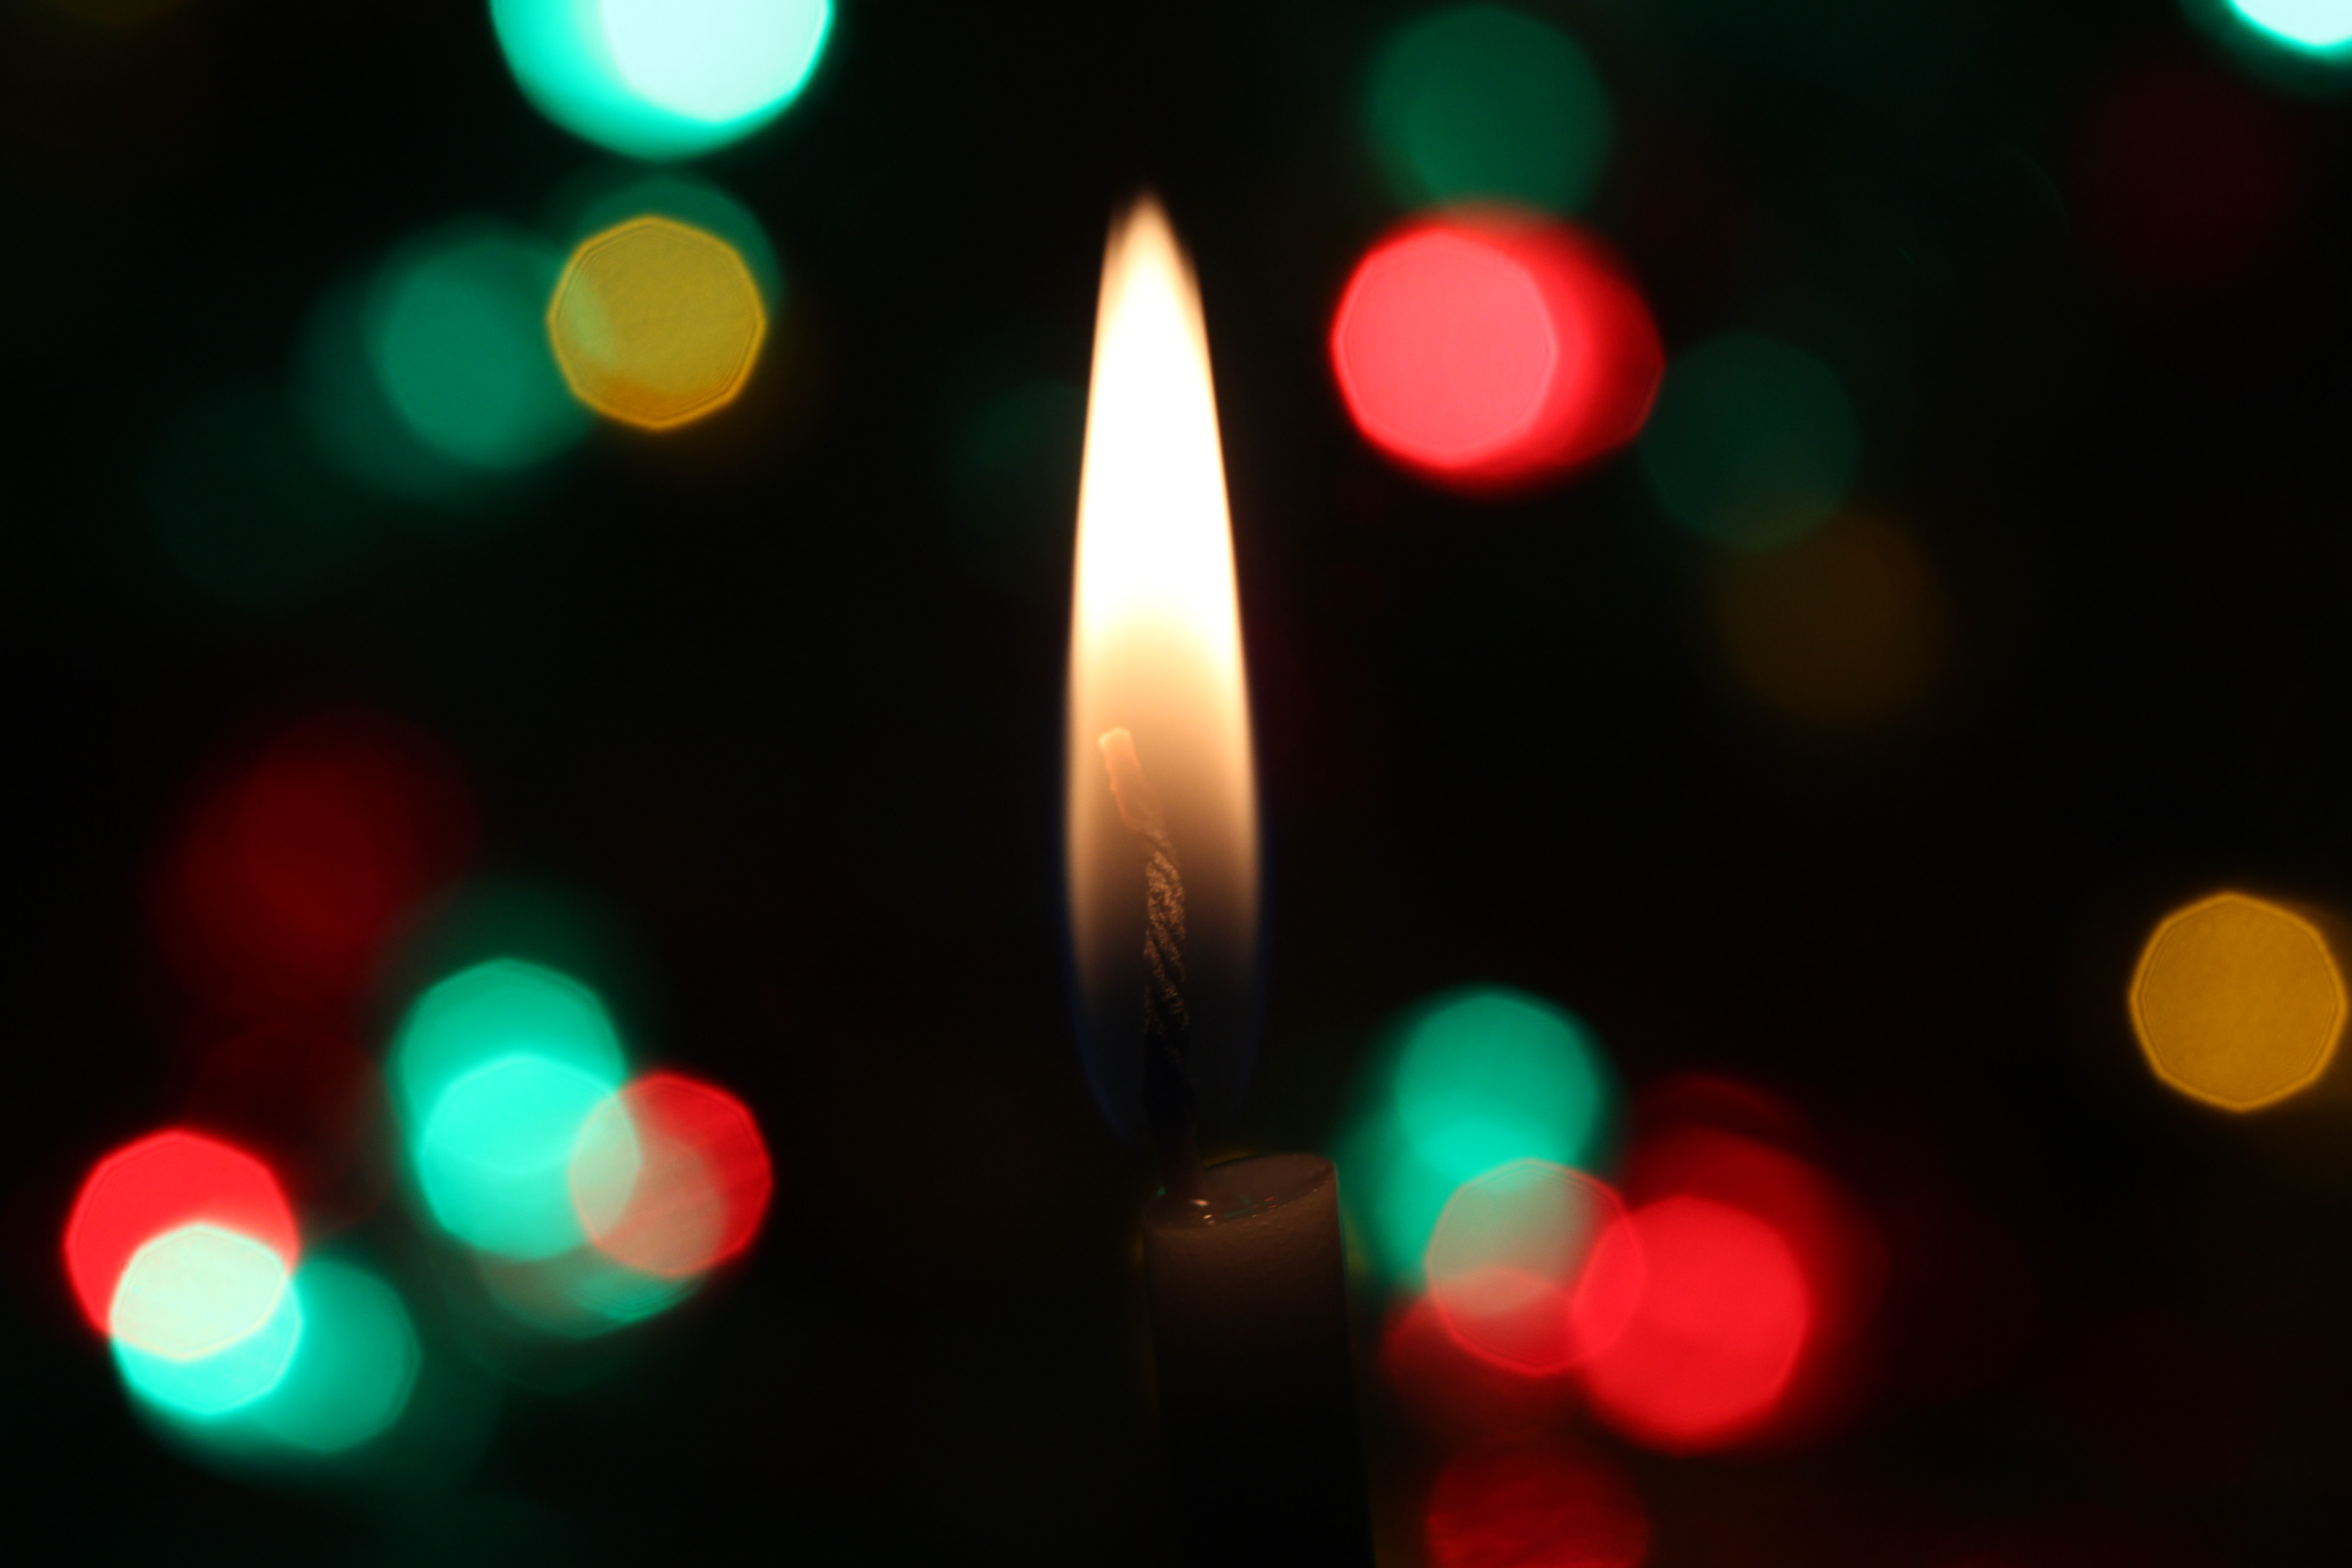 A candle flame burns between a bokeh of festive Christmas lights